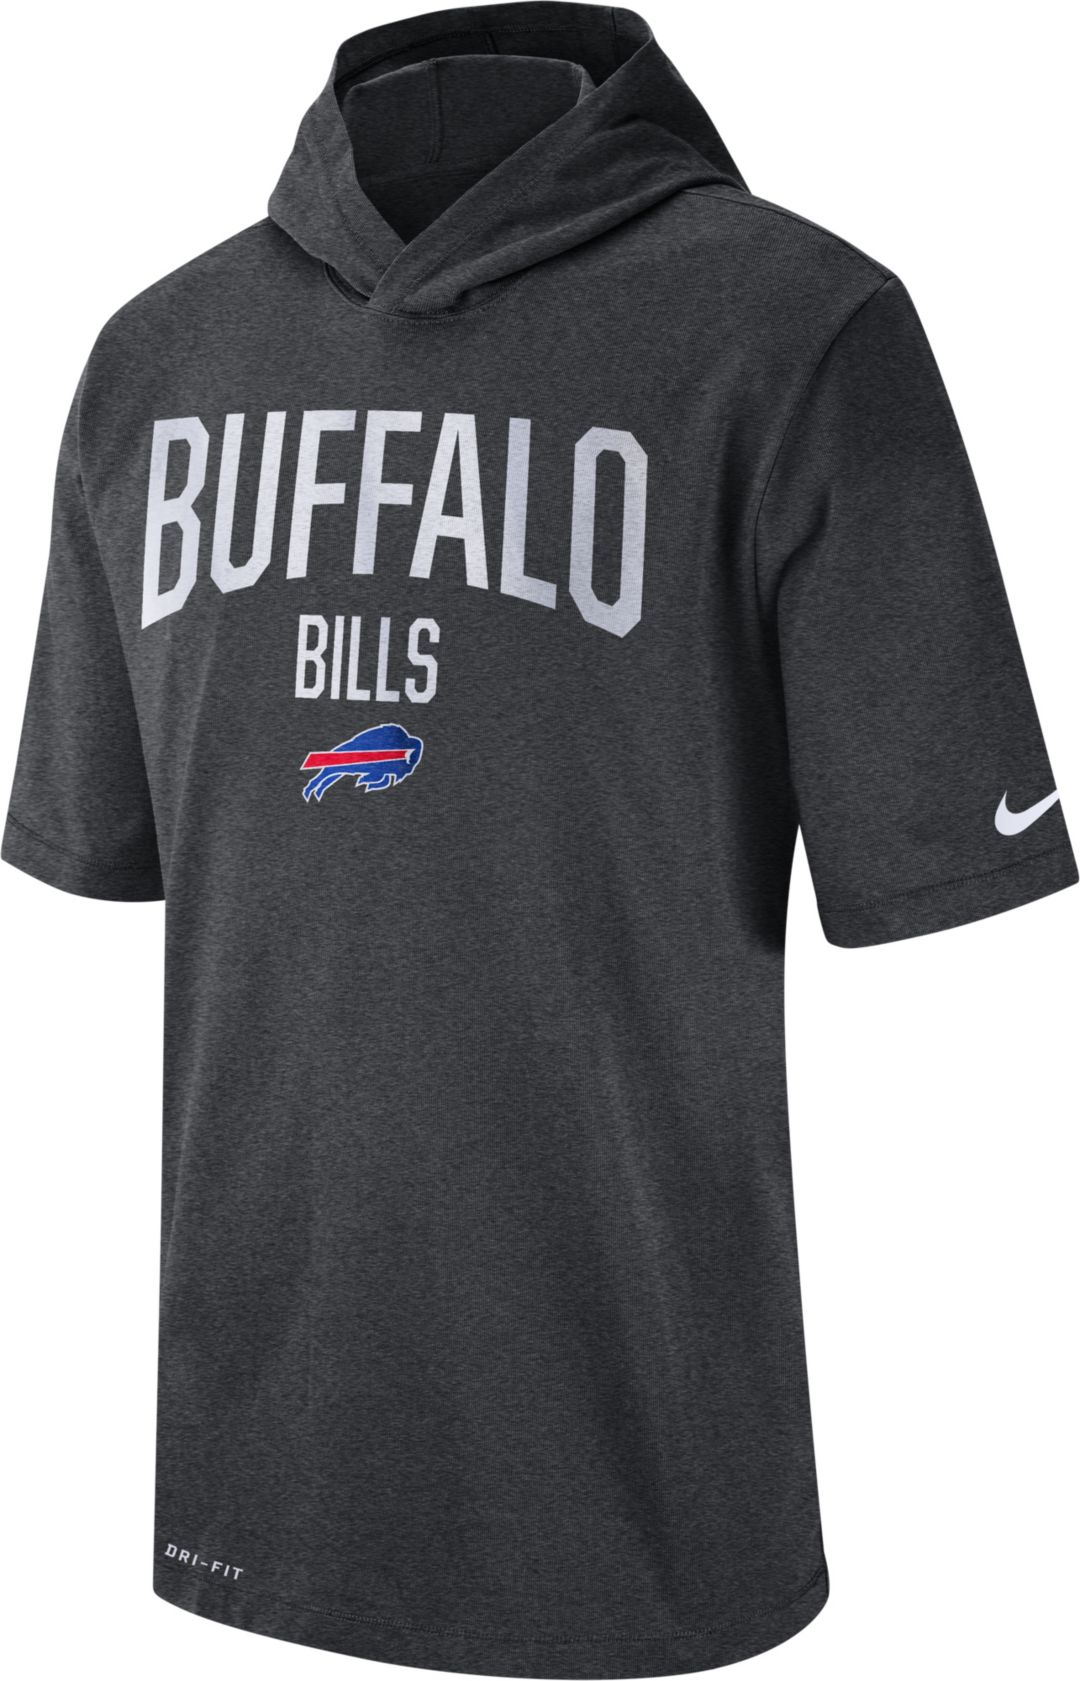 half off 108aa 333a9 Nike Men's Buffalo Bills Sideline Charcoal Short-Sleeve ...